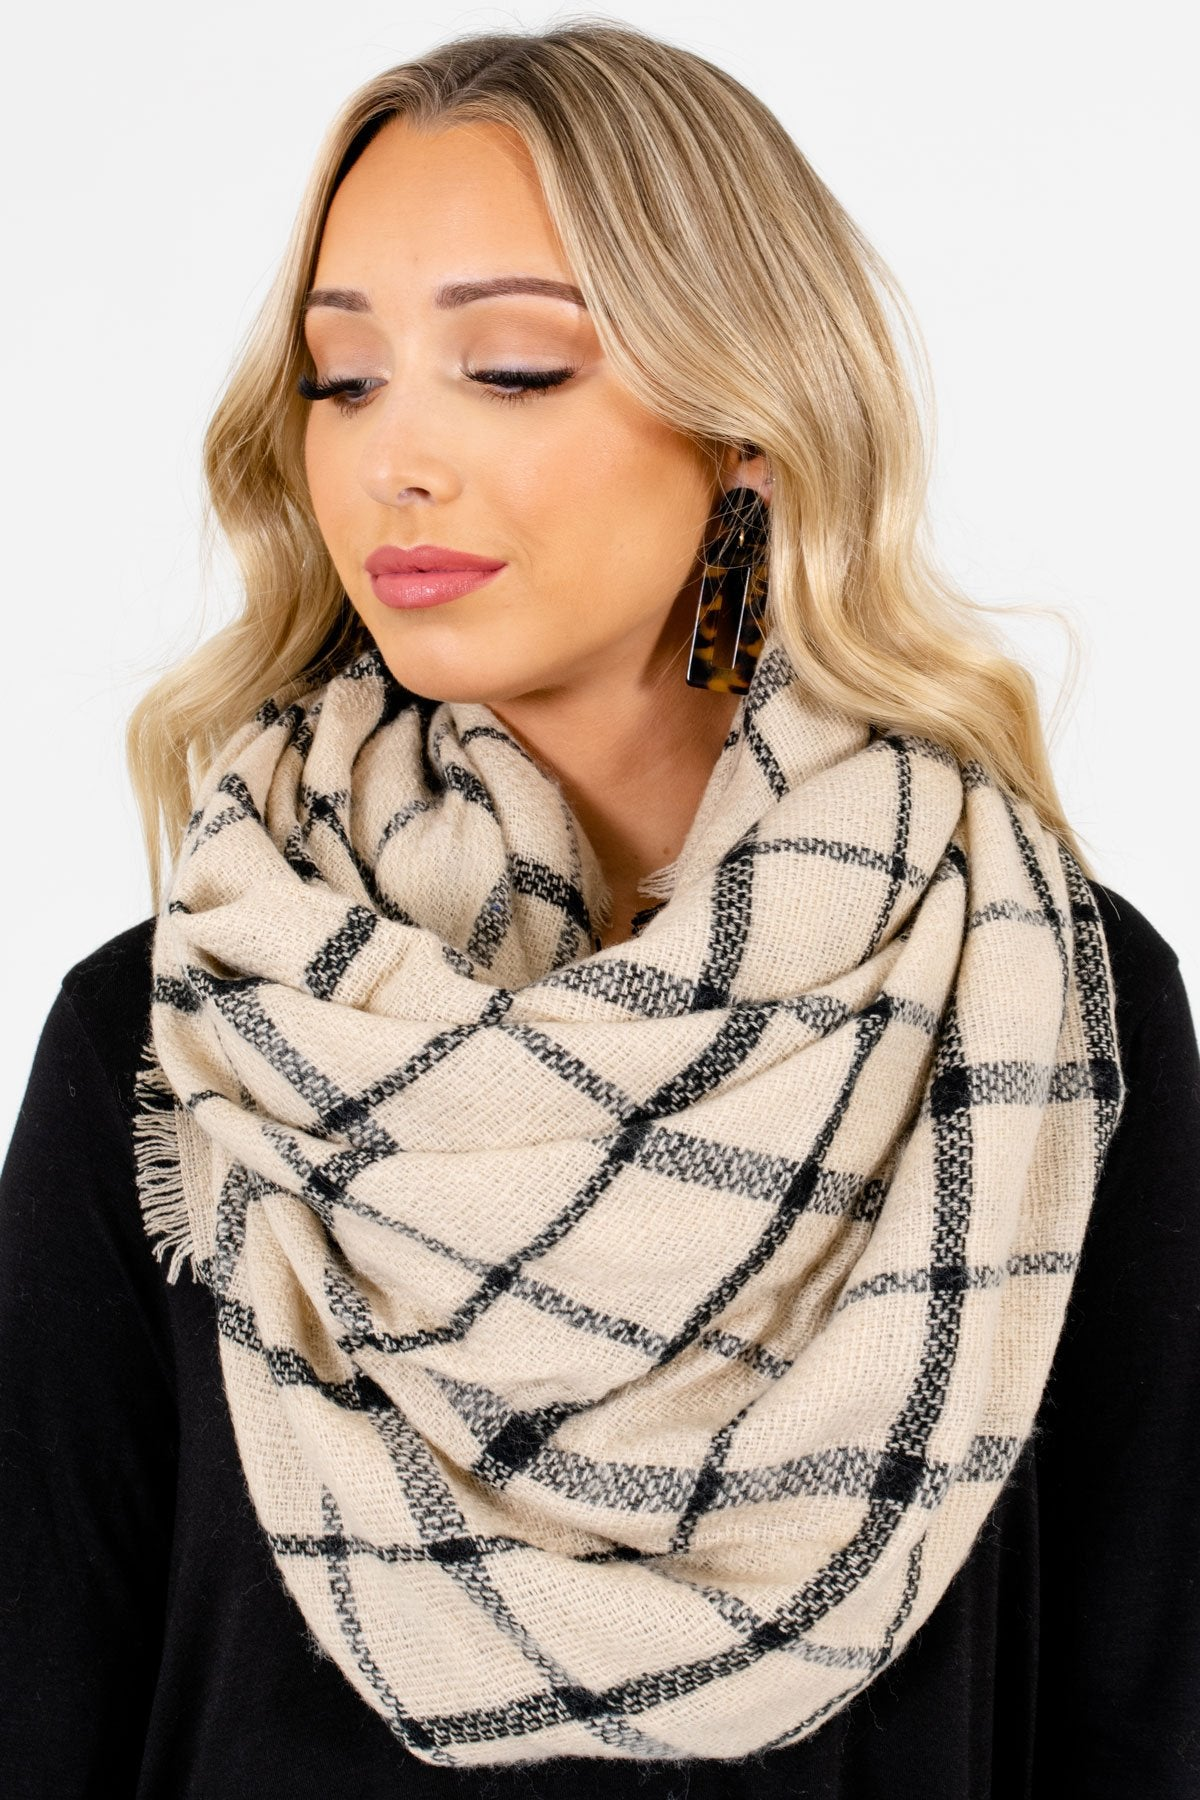 Beige and Black Plaid Patterned Boutique Scarves for Women